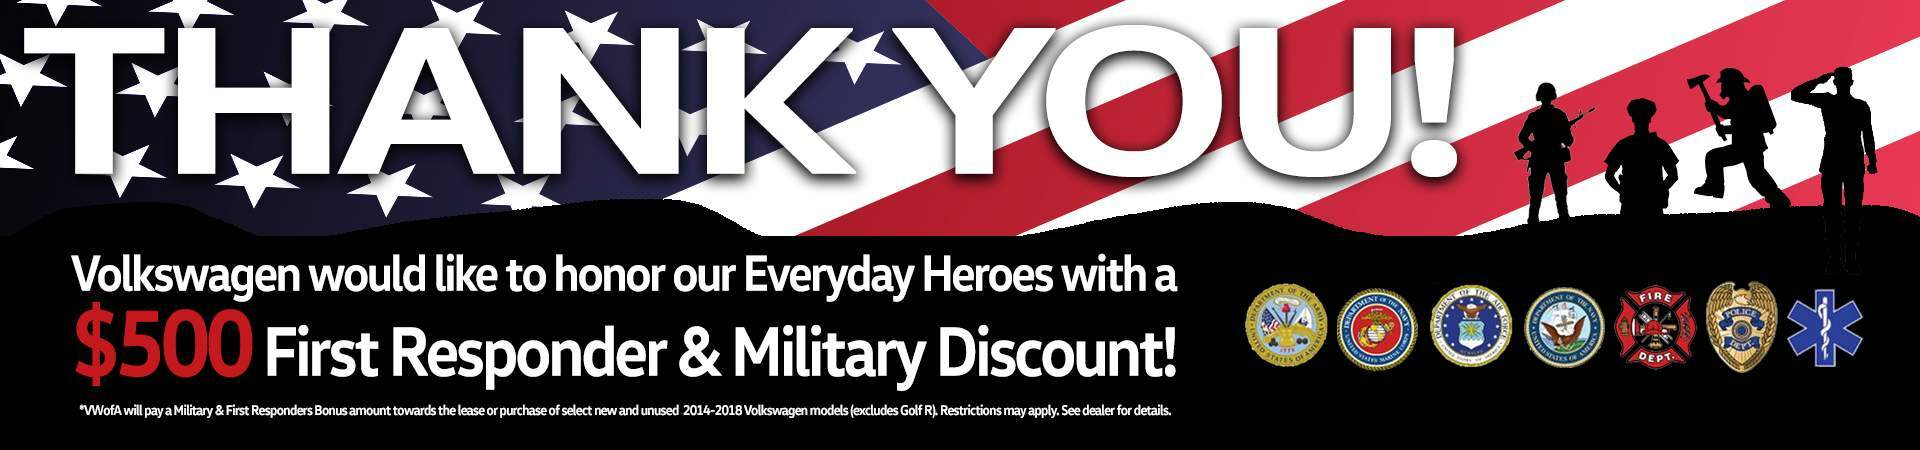 First Responder & Military Discount